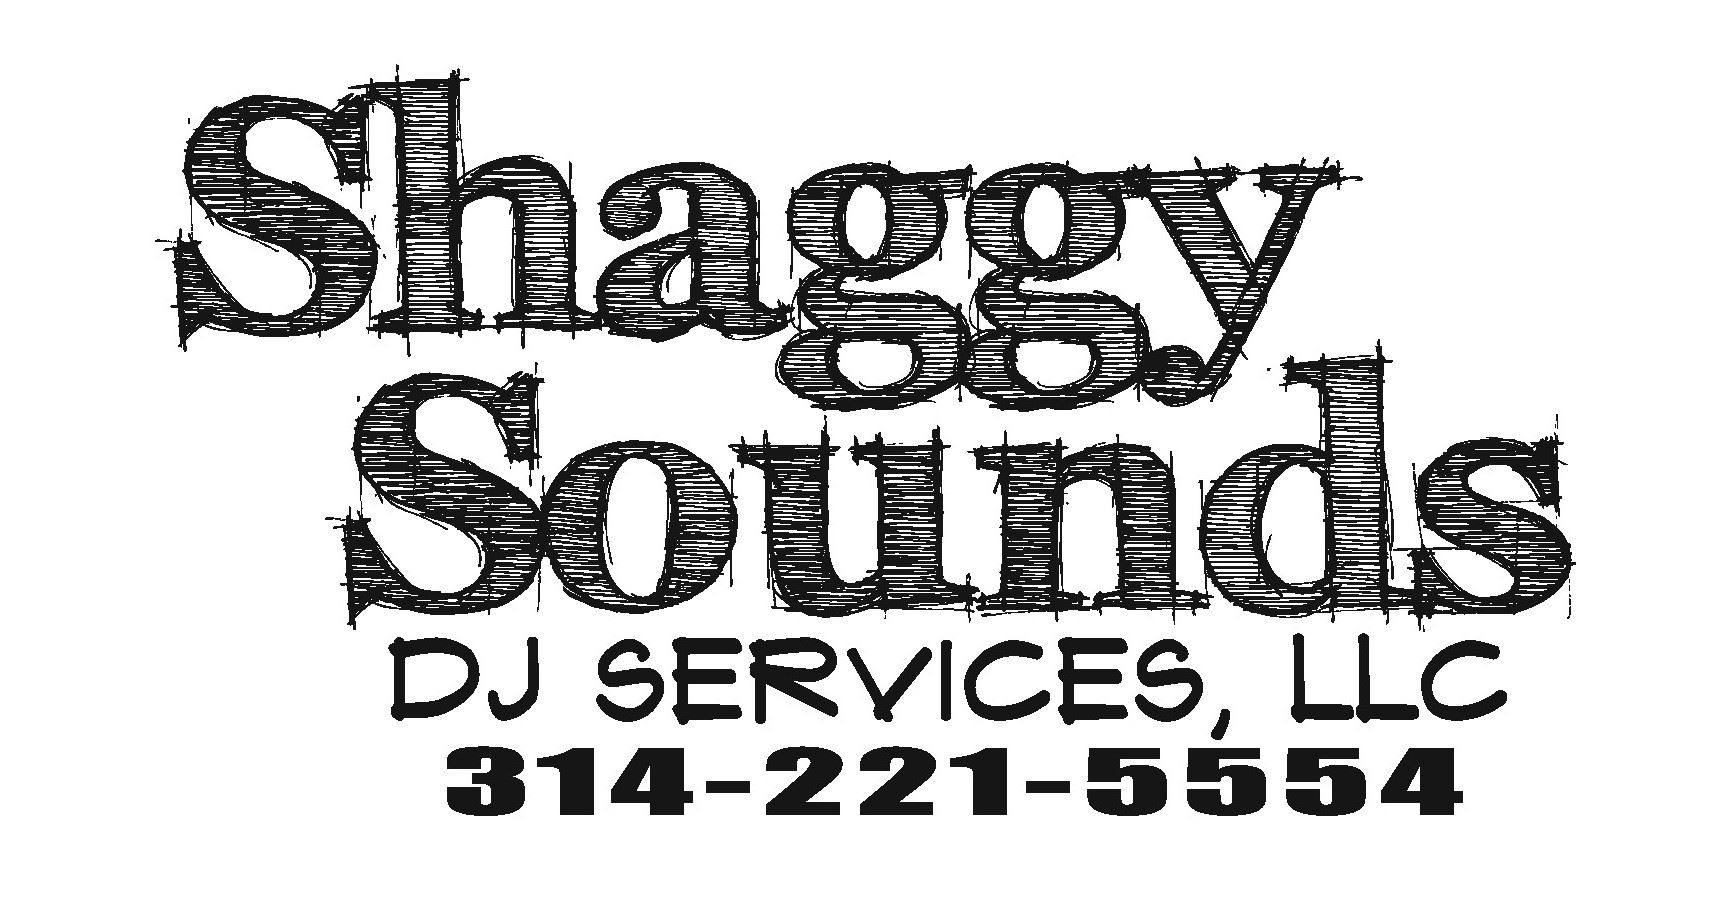 shaggy sounds tshirt type1